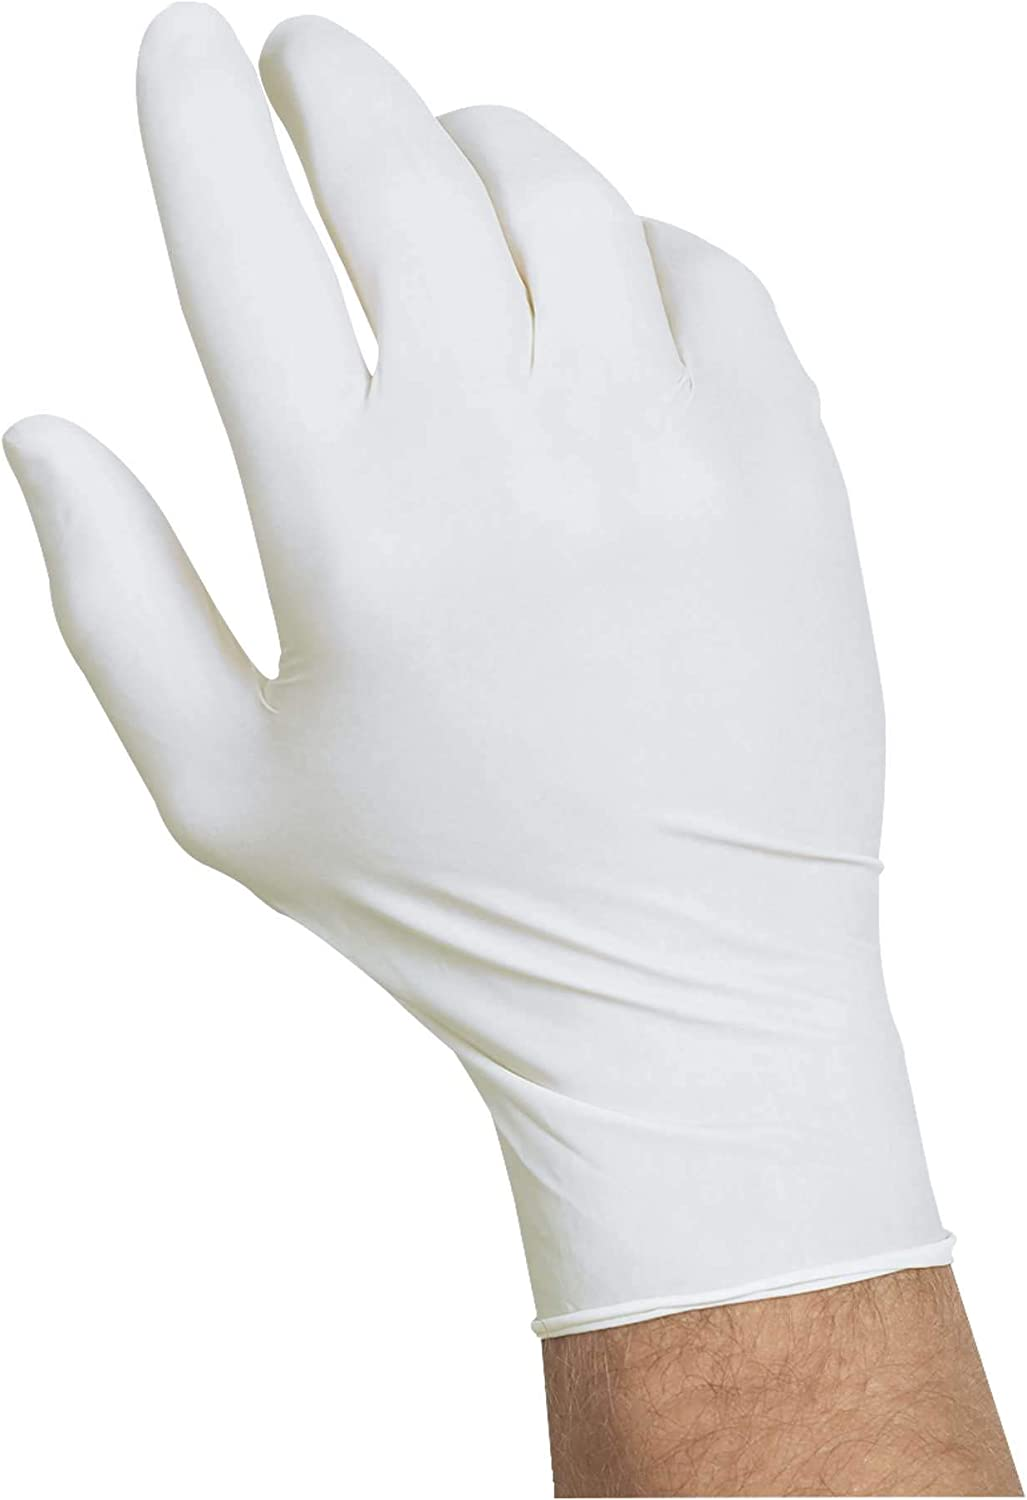 Disposable Protective Gloves,Latex Safety Working Gloves 50 Pairs No Powder Nitrile Industrial Glove